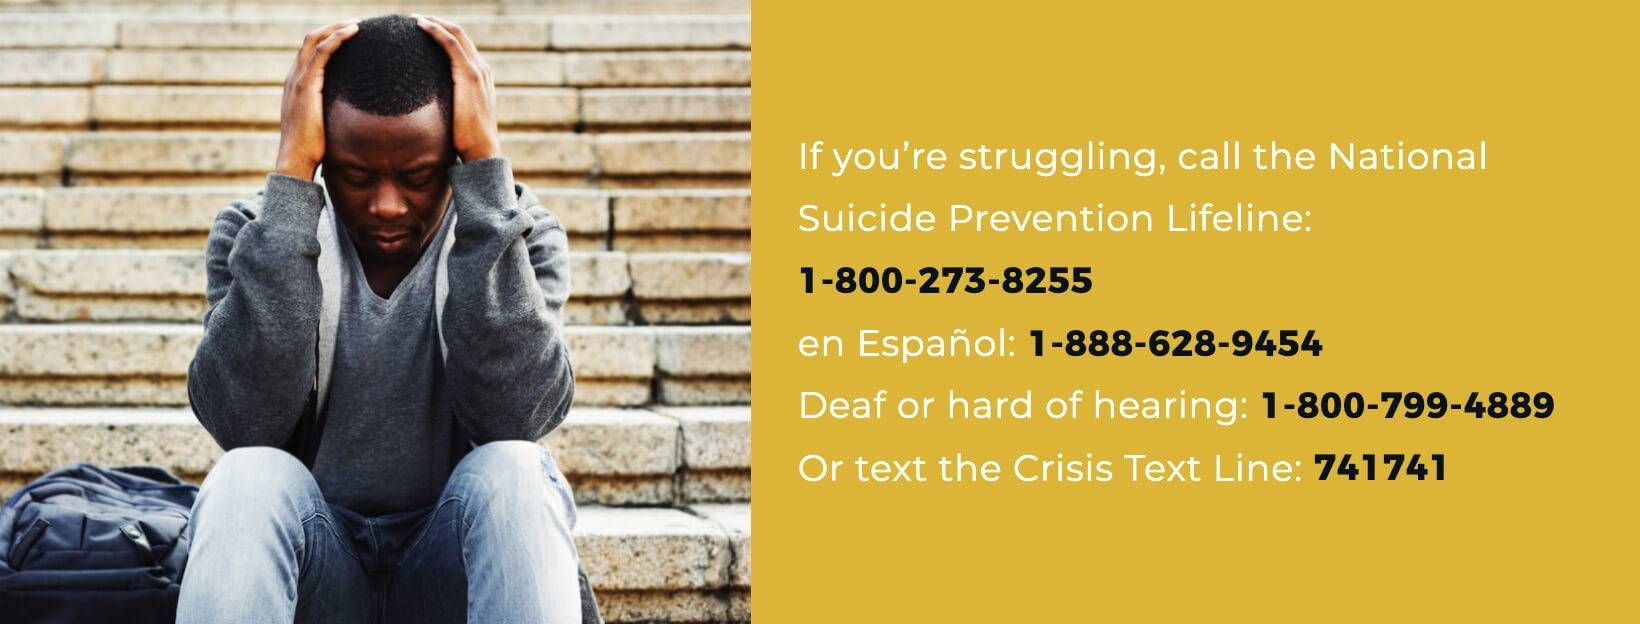 Image with text displaying the National Suicide Prevention Lifeline - 1-800-273-8255 or 1-800-799-4889 for those deaf or hard of hearing. Rewire PBS Living Suicide